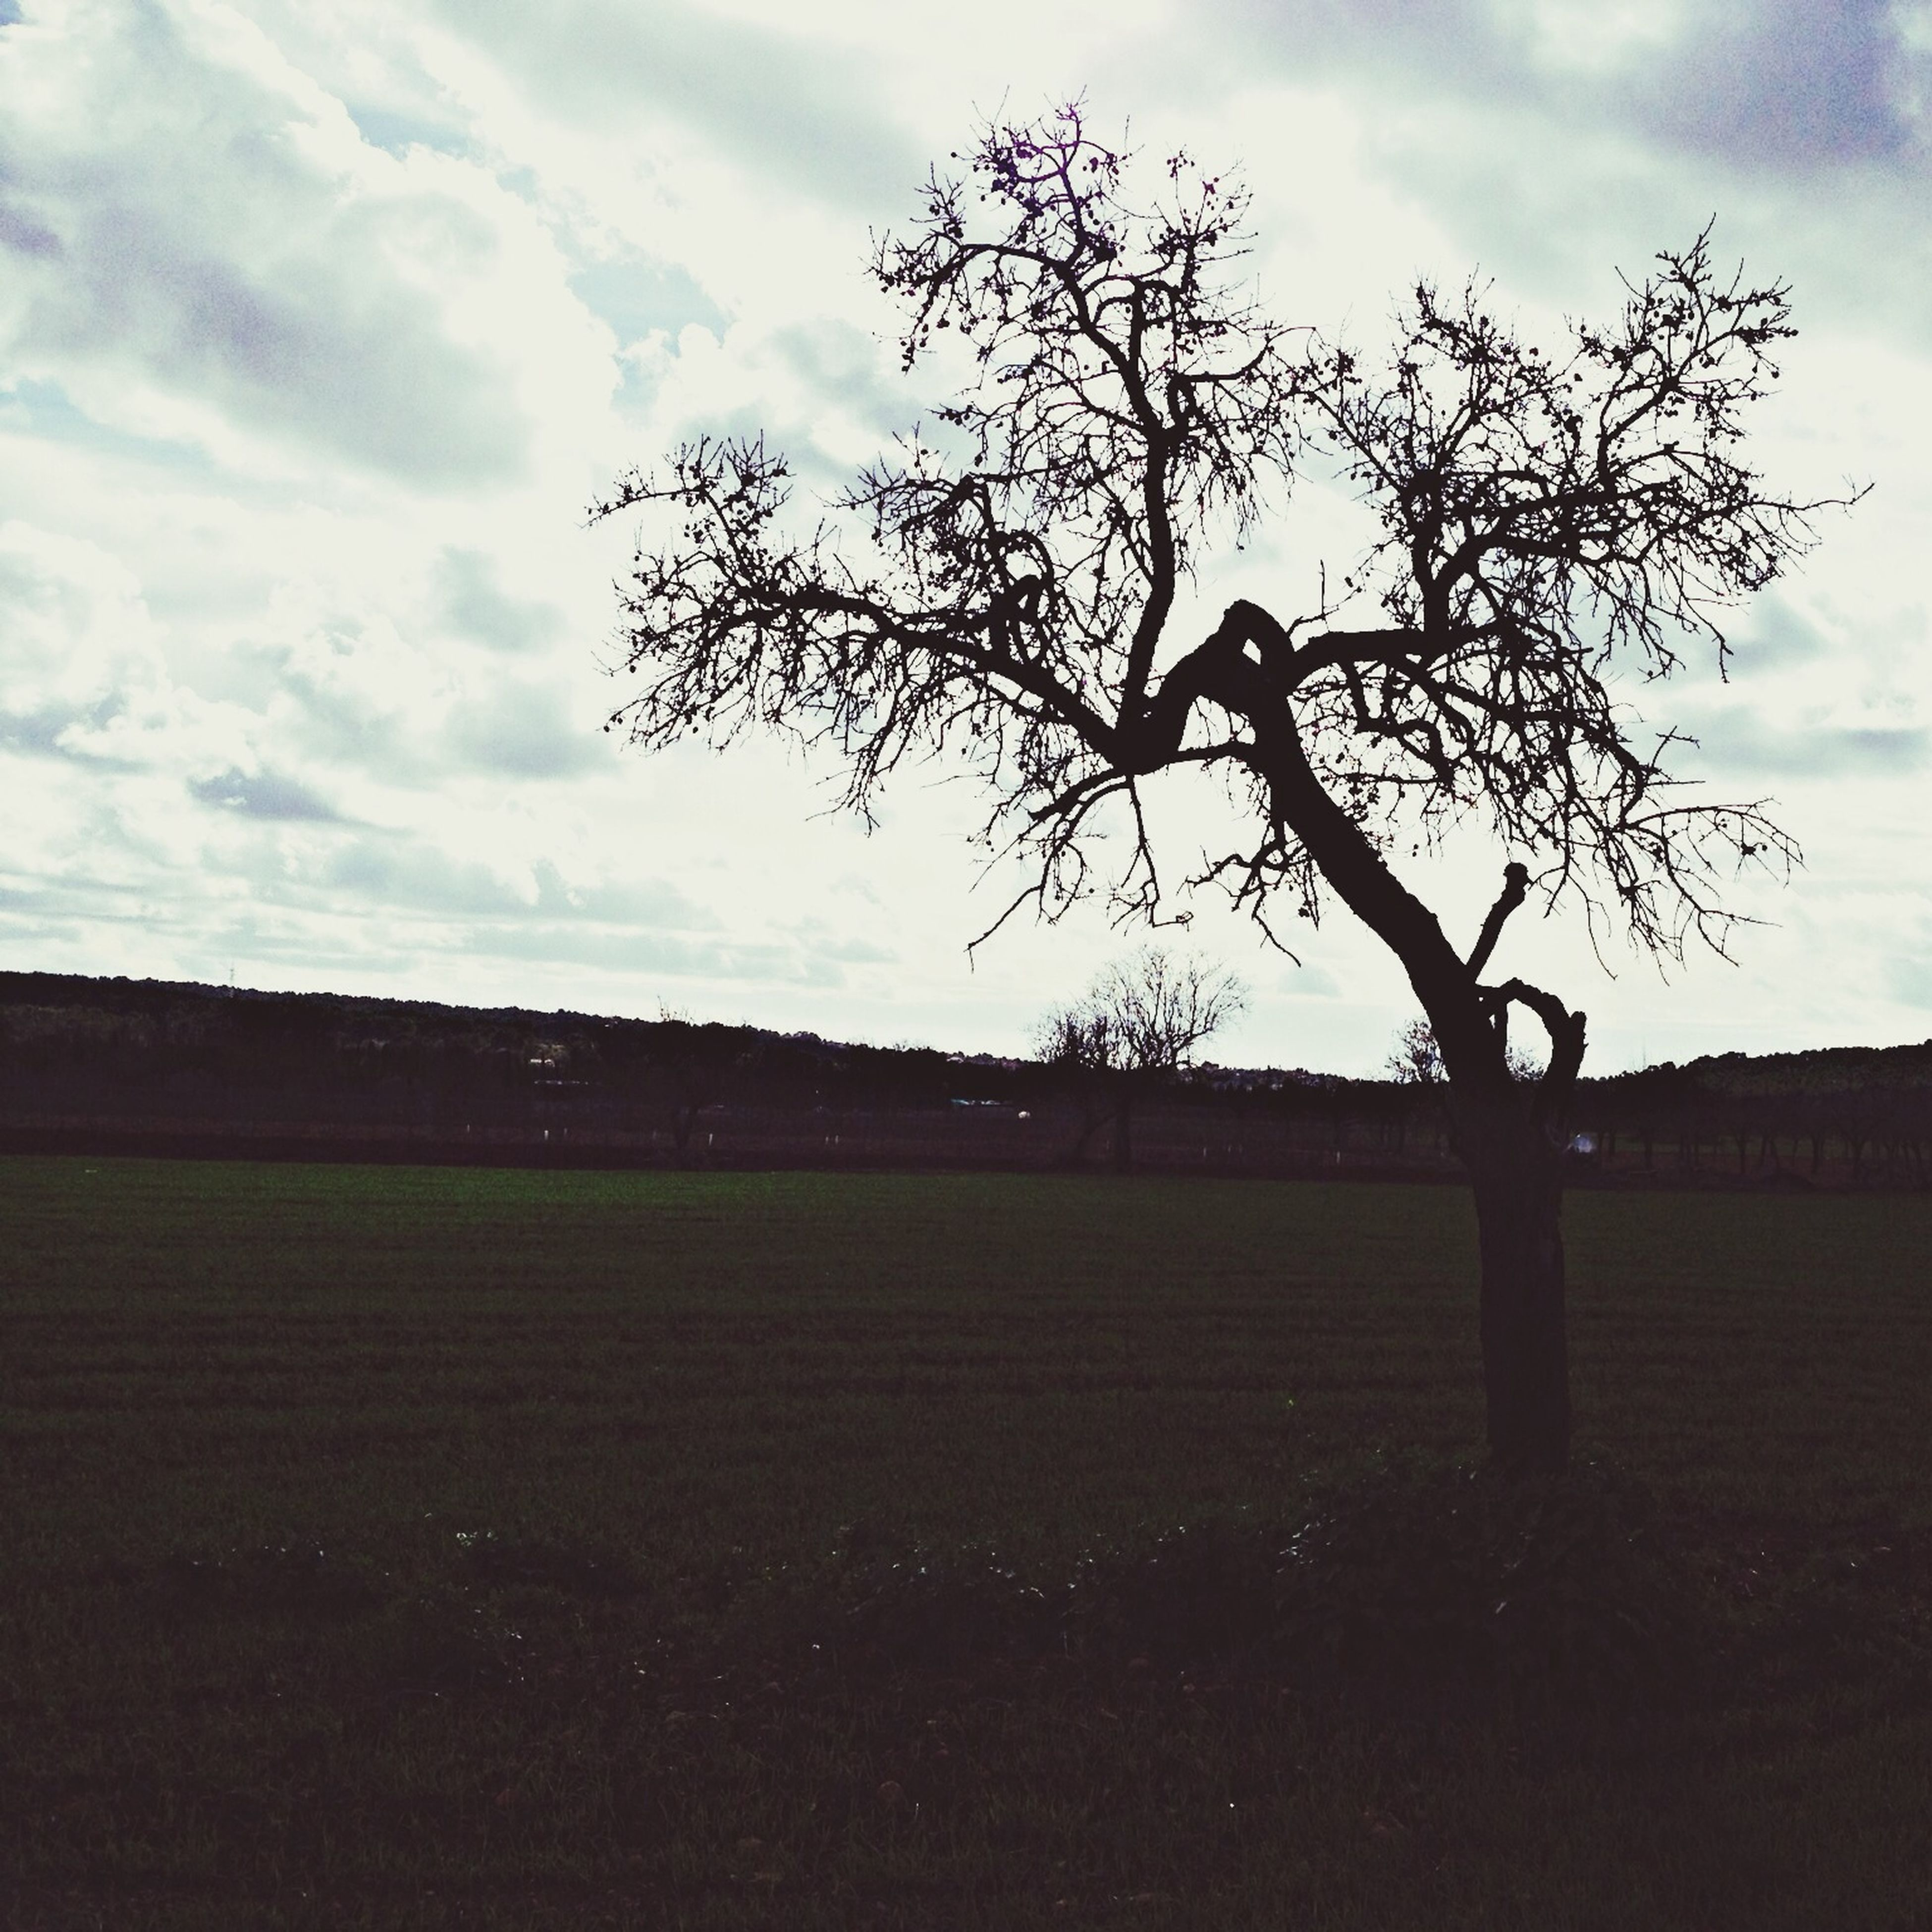 sky, landscape, field, tree, tranquility, tranquil scene, bare tree, grass, cloud - sky, cloud, nature, scenics, branch, beauty in nature, grassy, rural scene, growth, cloudy, silhouette, no people